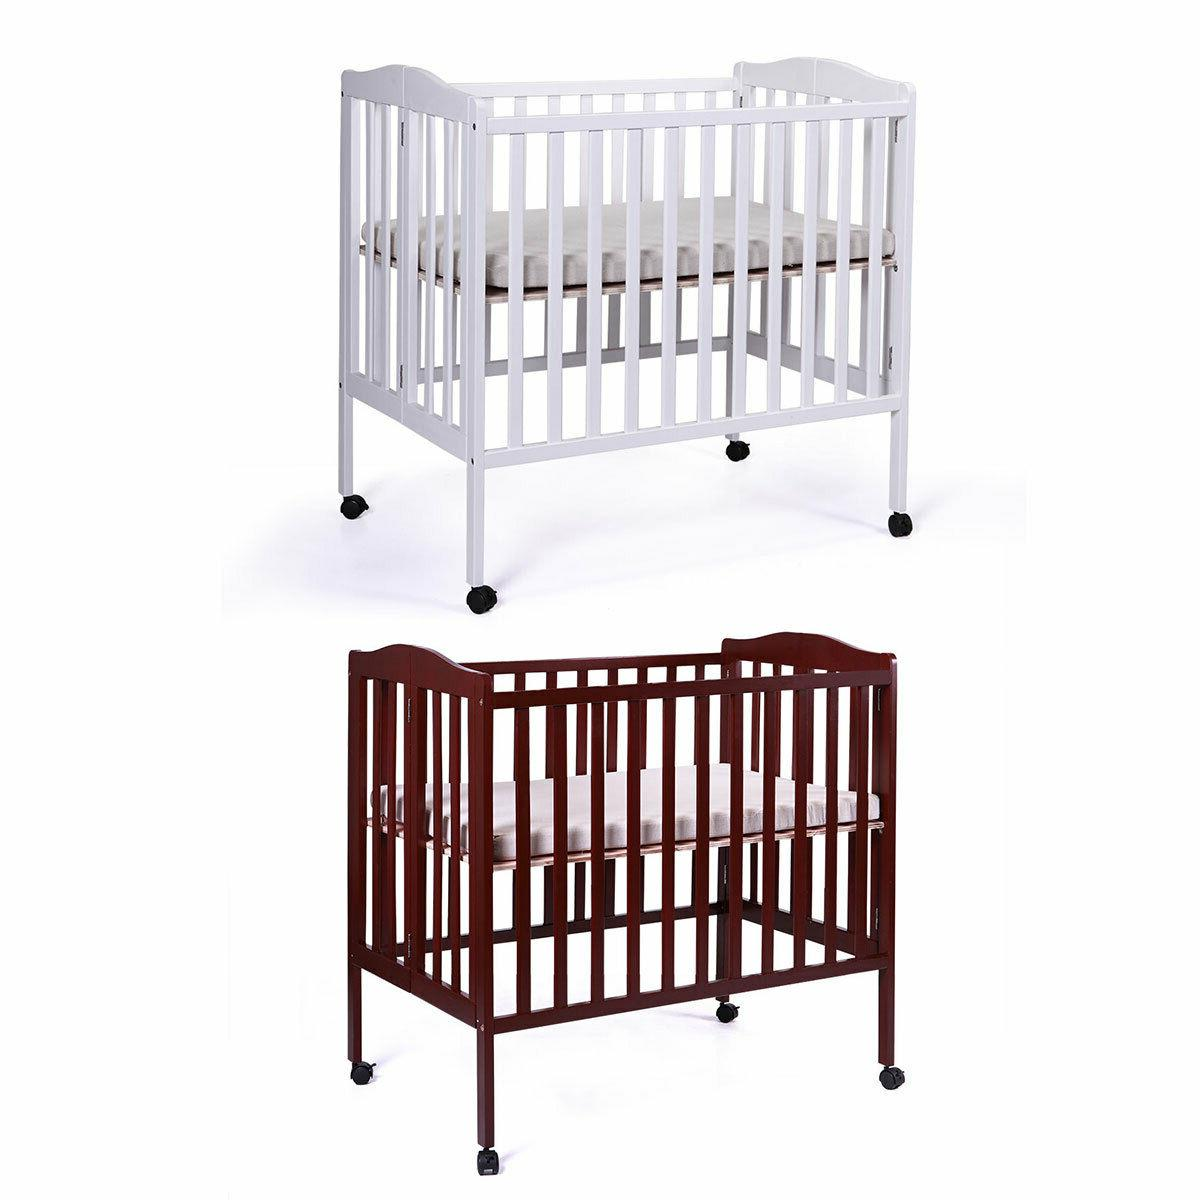 foldable cradle pine wood baby toddler bed